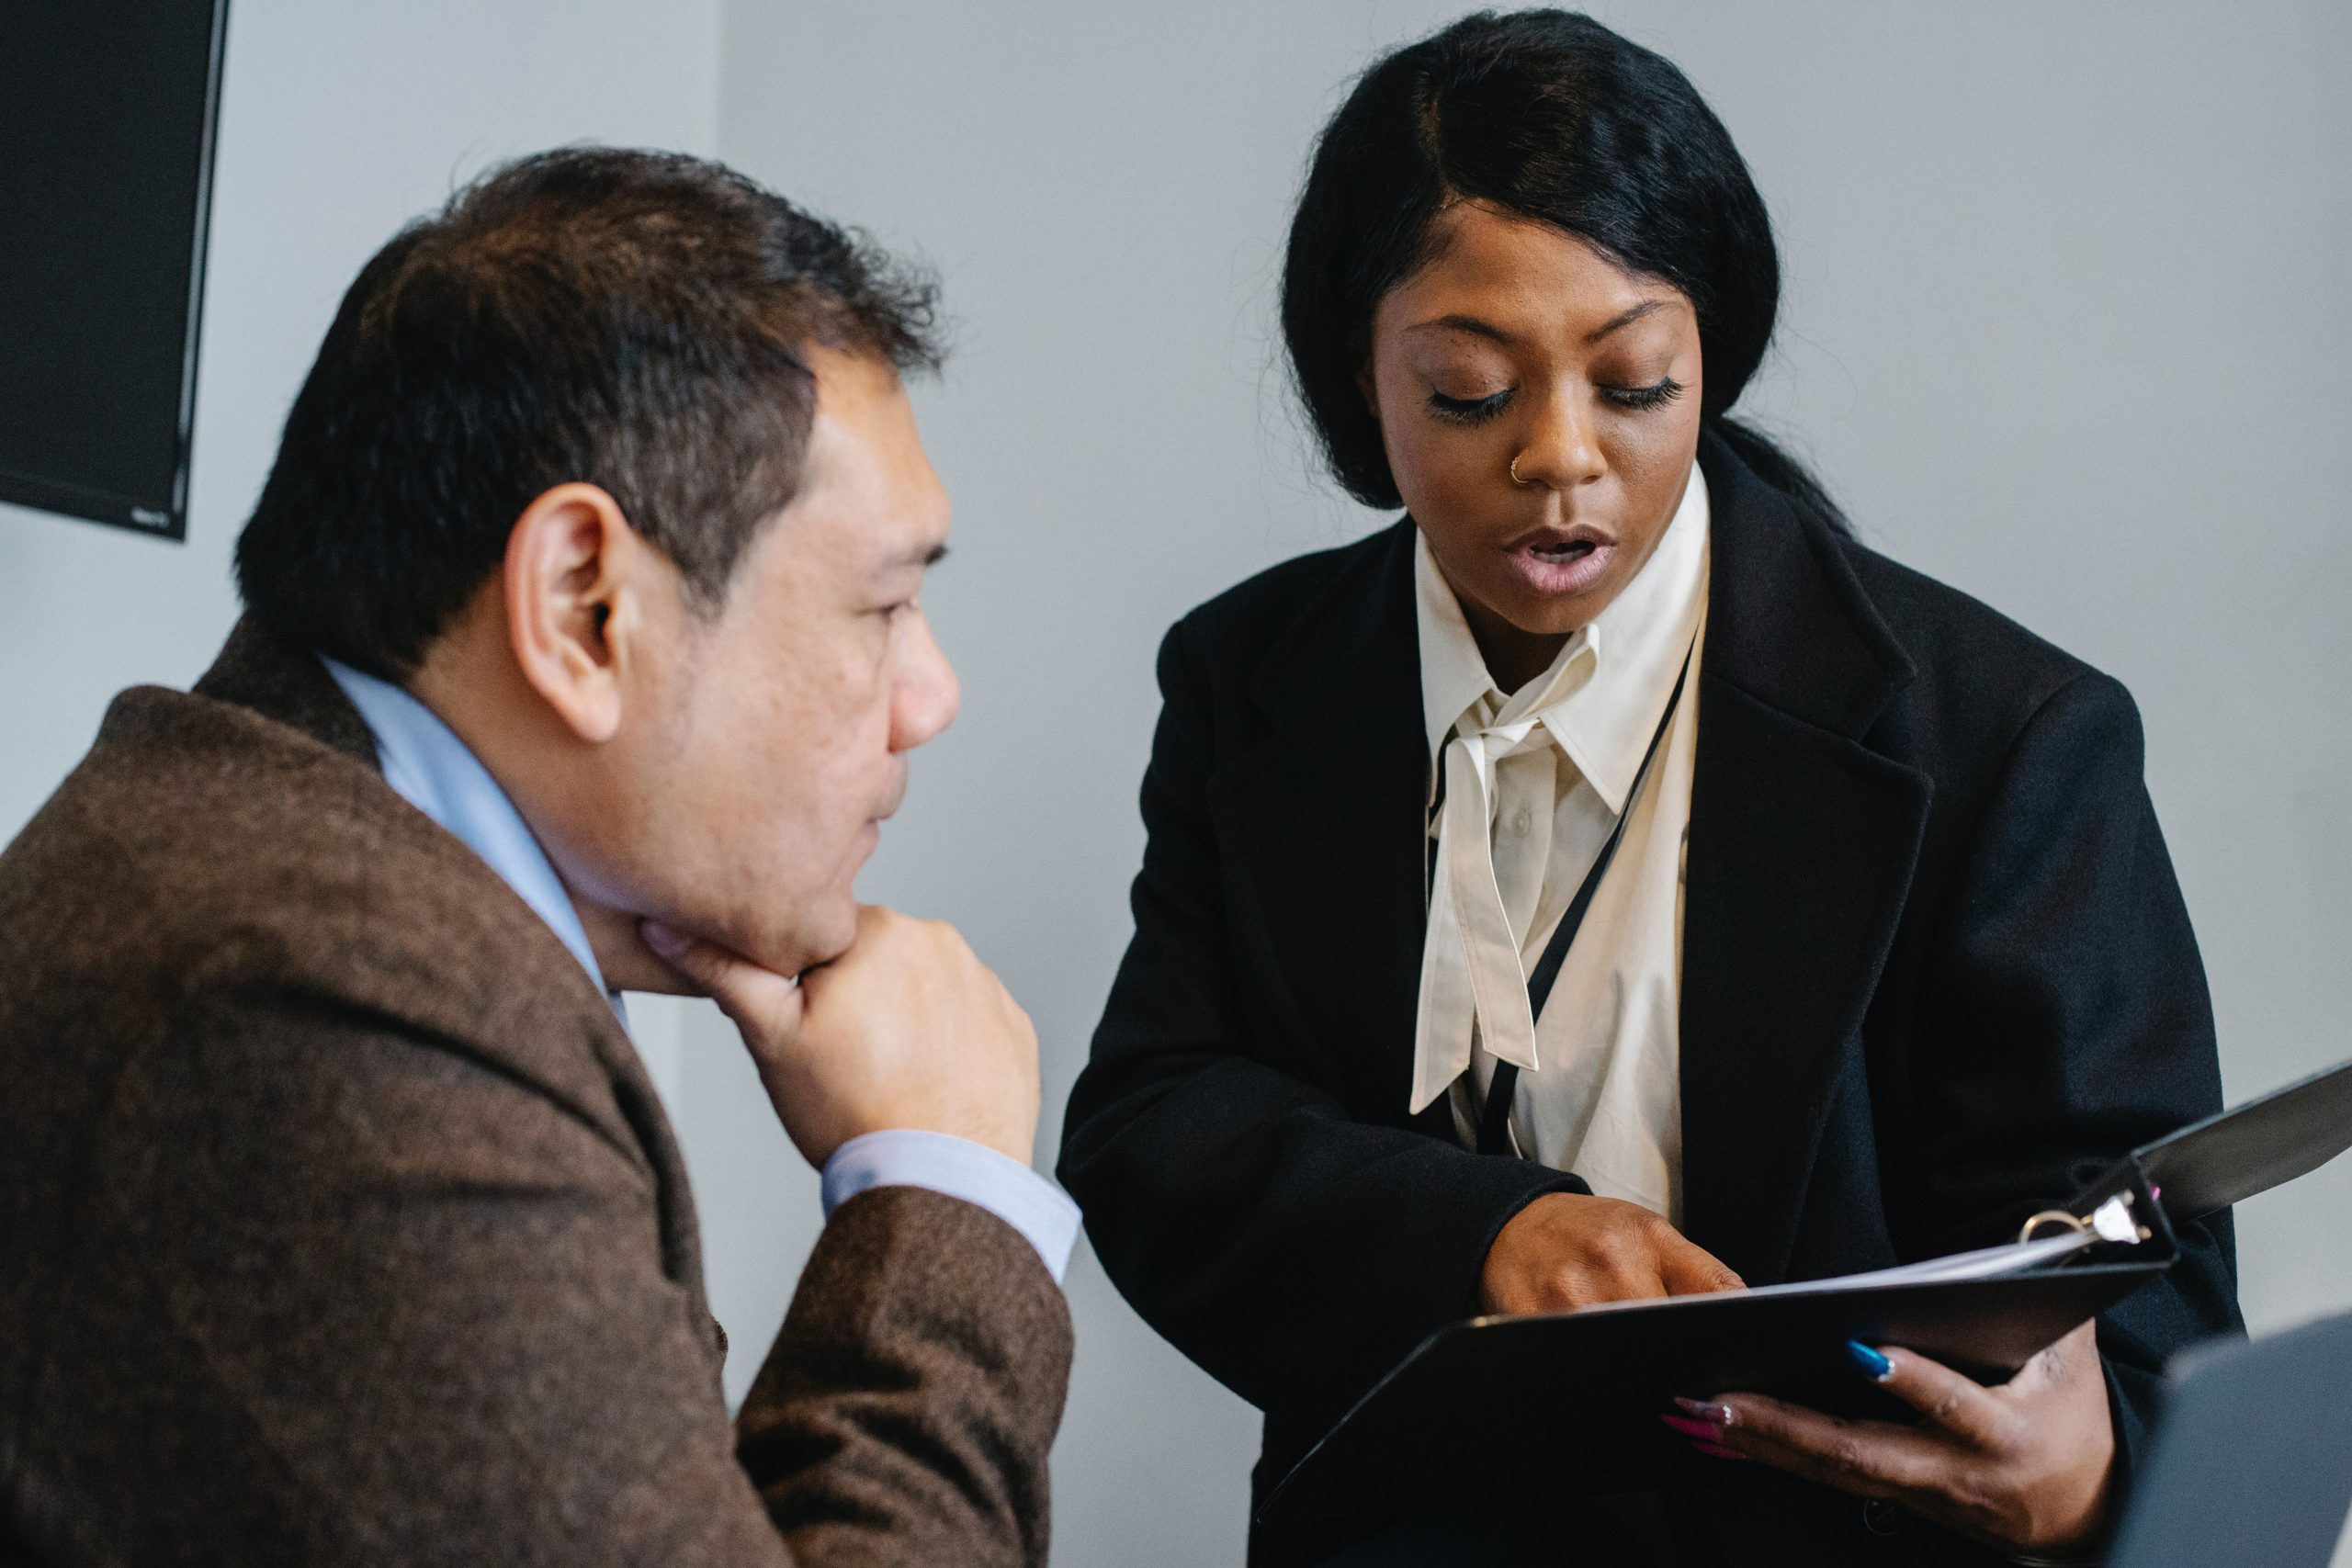 Line manager pointing at document in their binder, while their colleague listens to their briefing